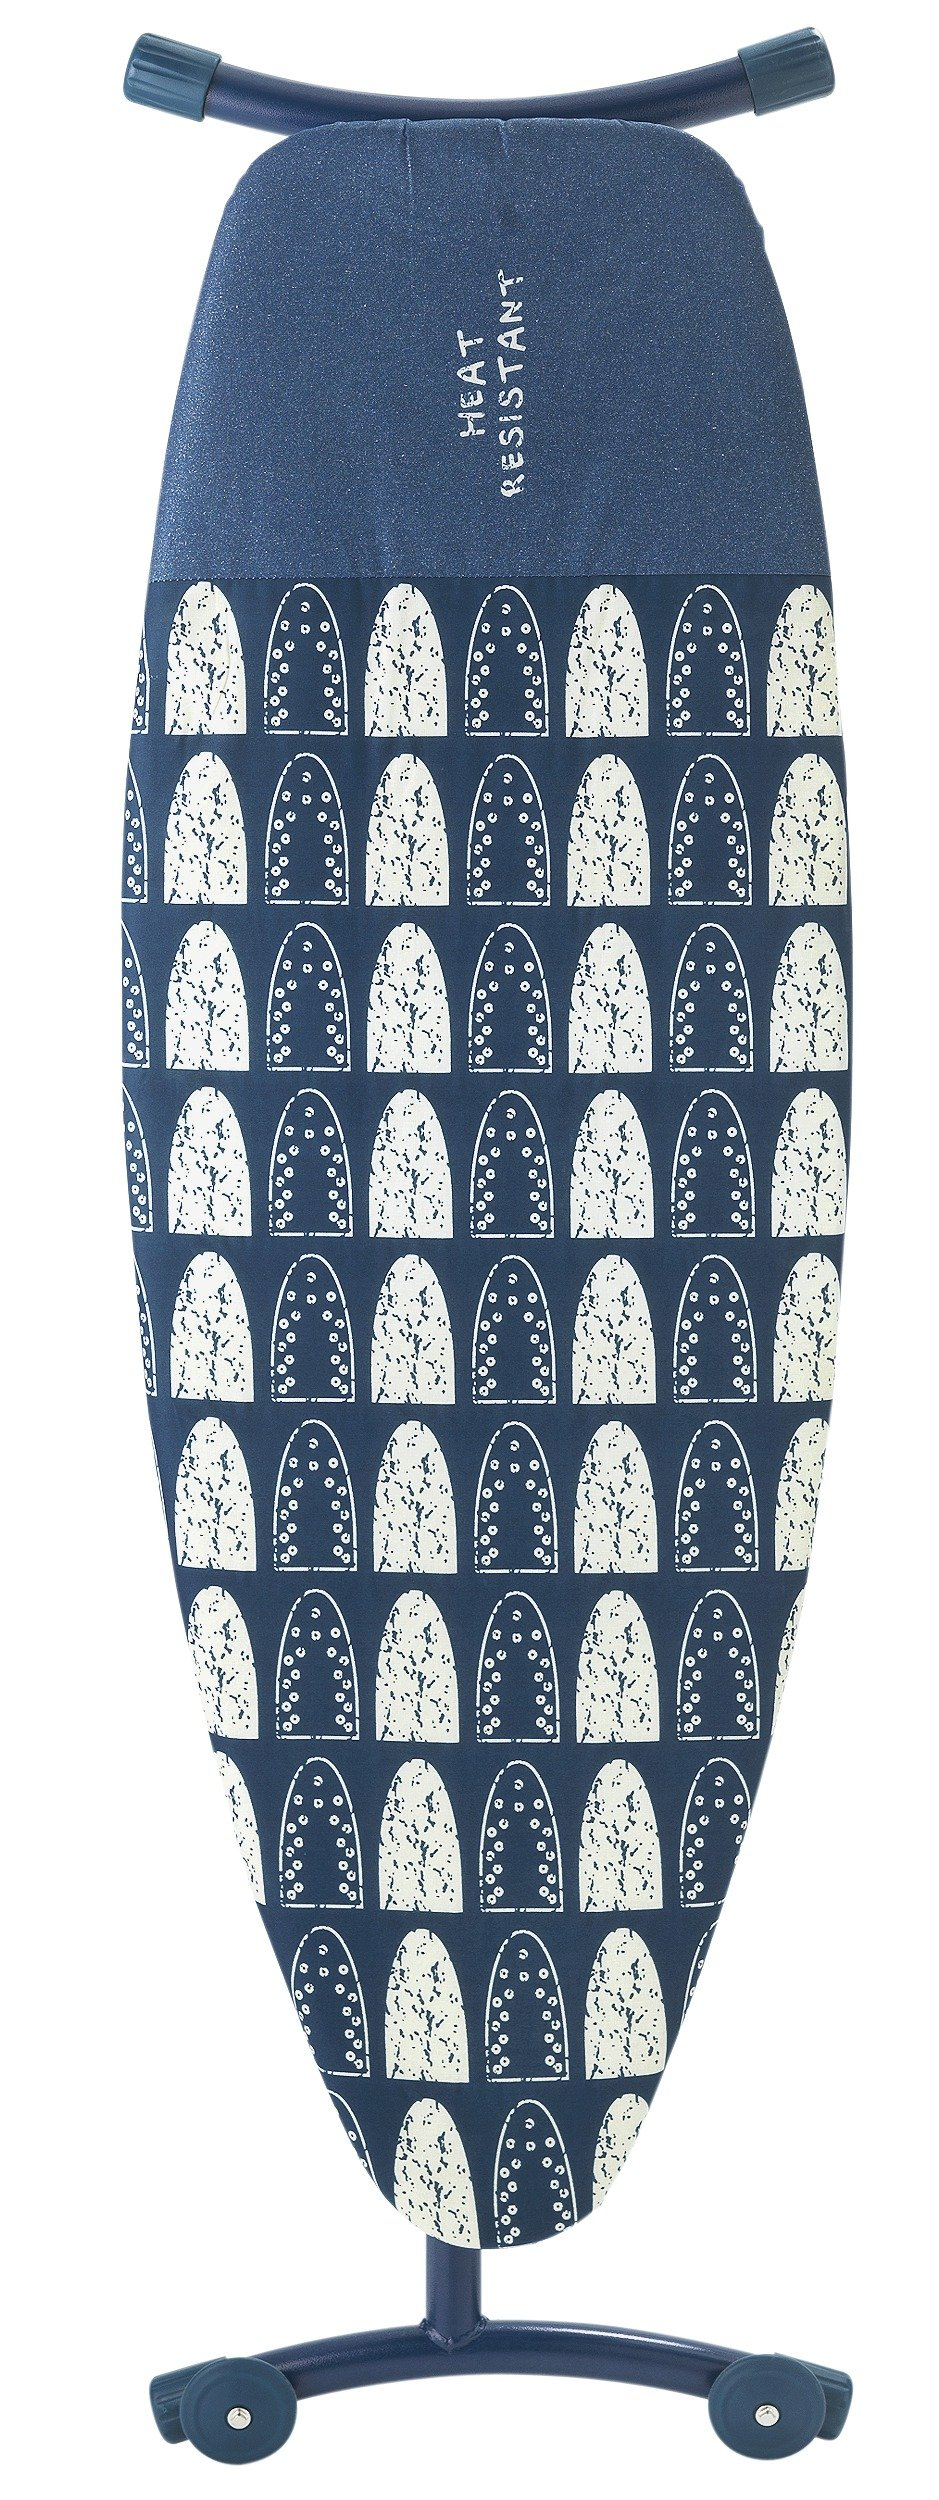 Addis Deluxe 135 x 46cm Ironing Board